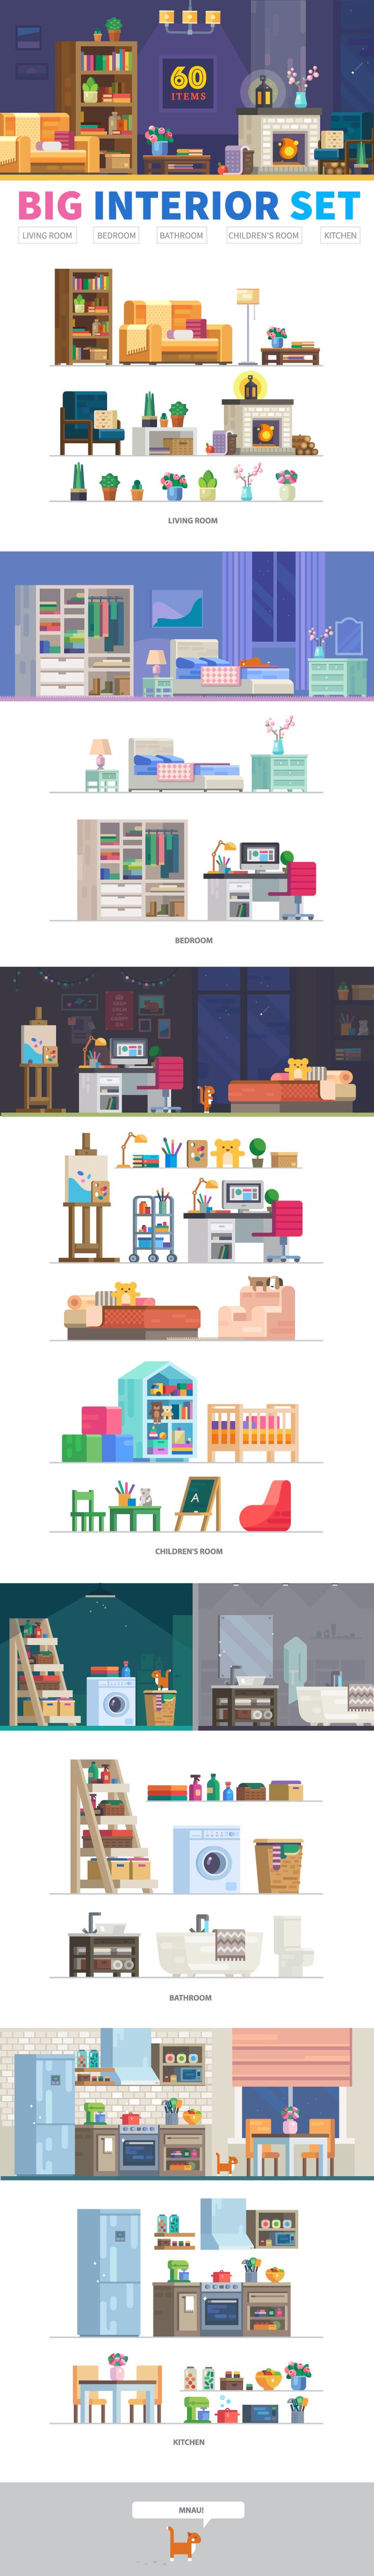 Really impressive flat illustrations! All very nicely done.